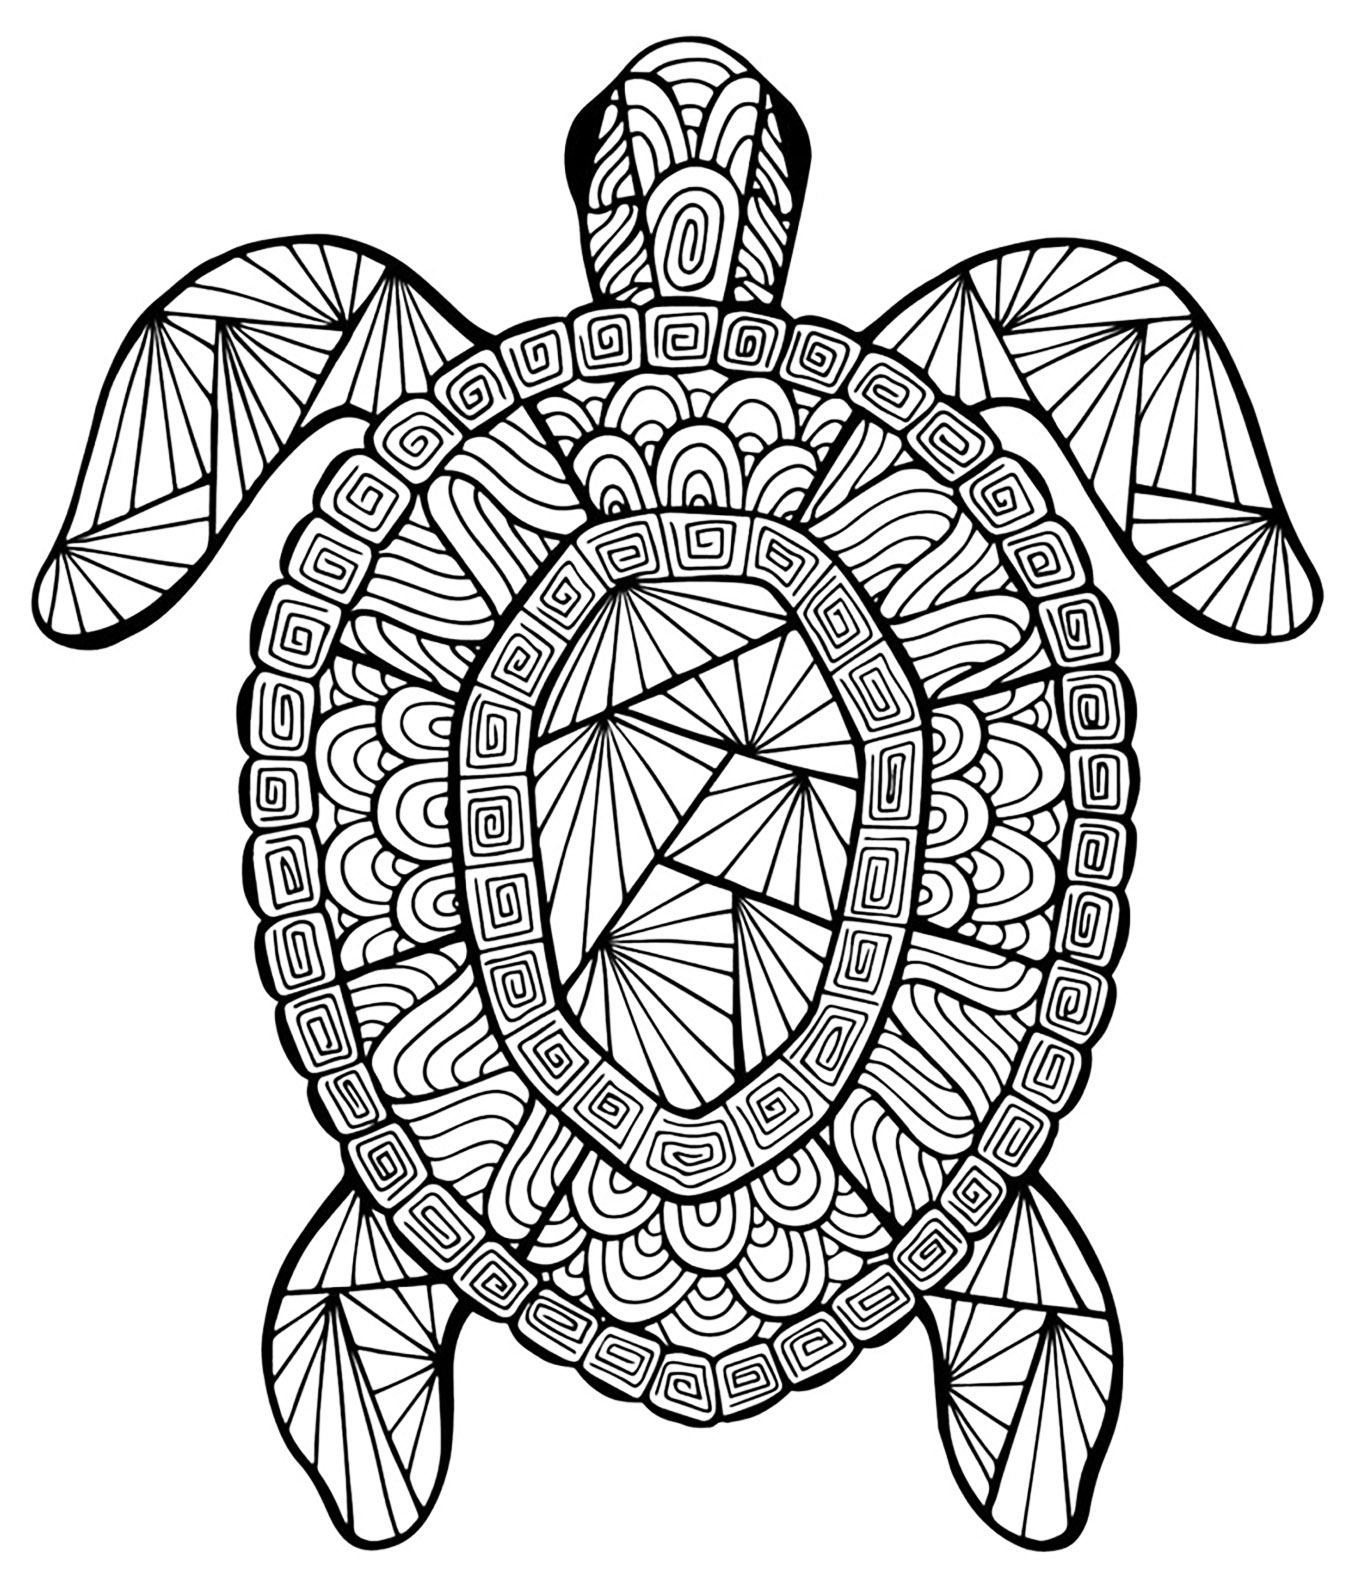 Turtle coloring pages for adults